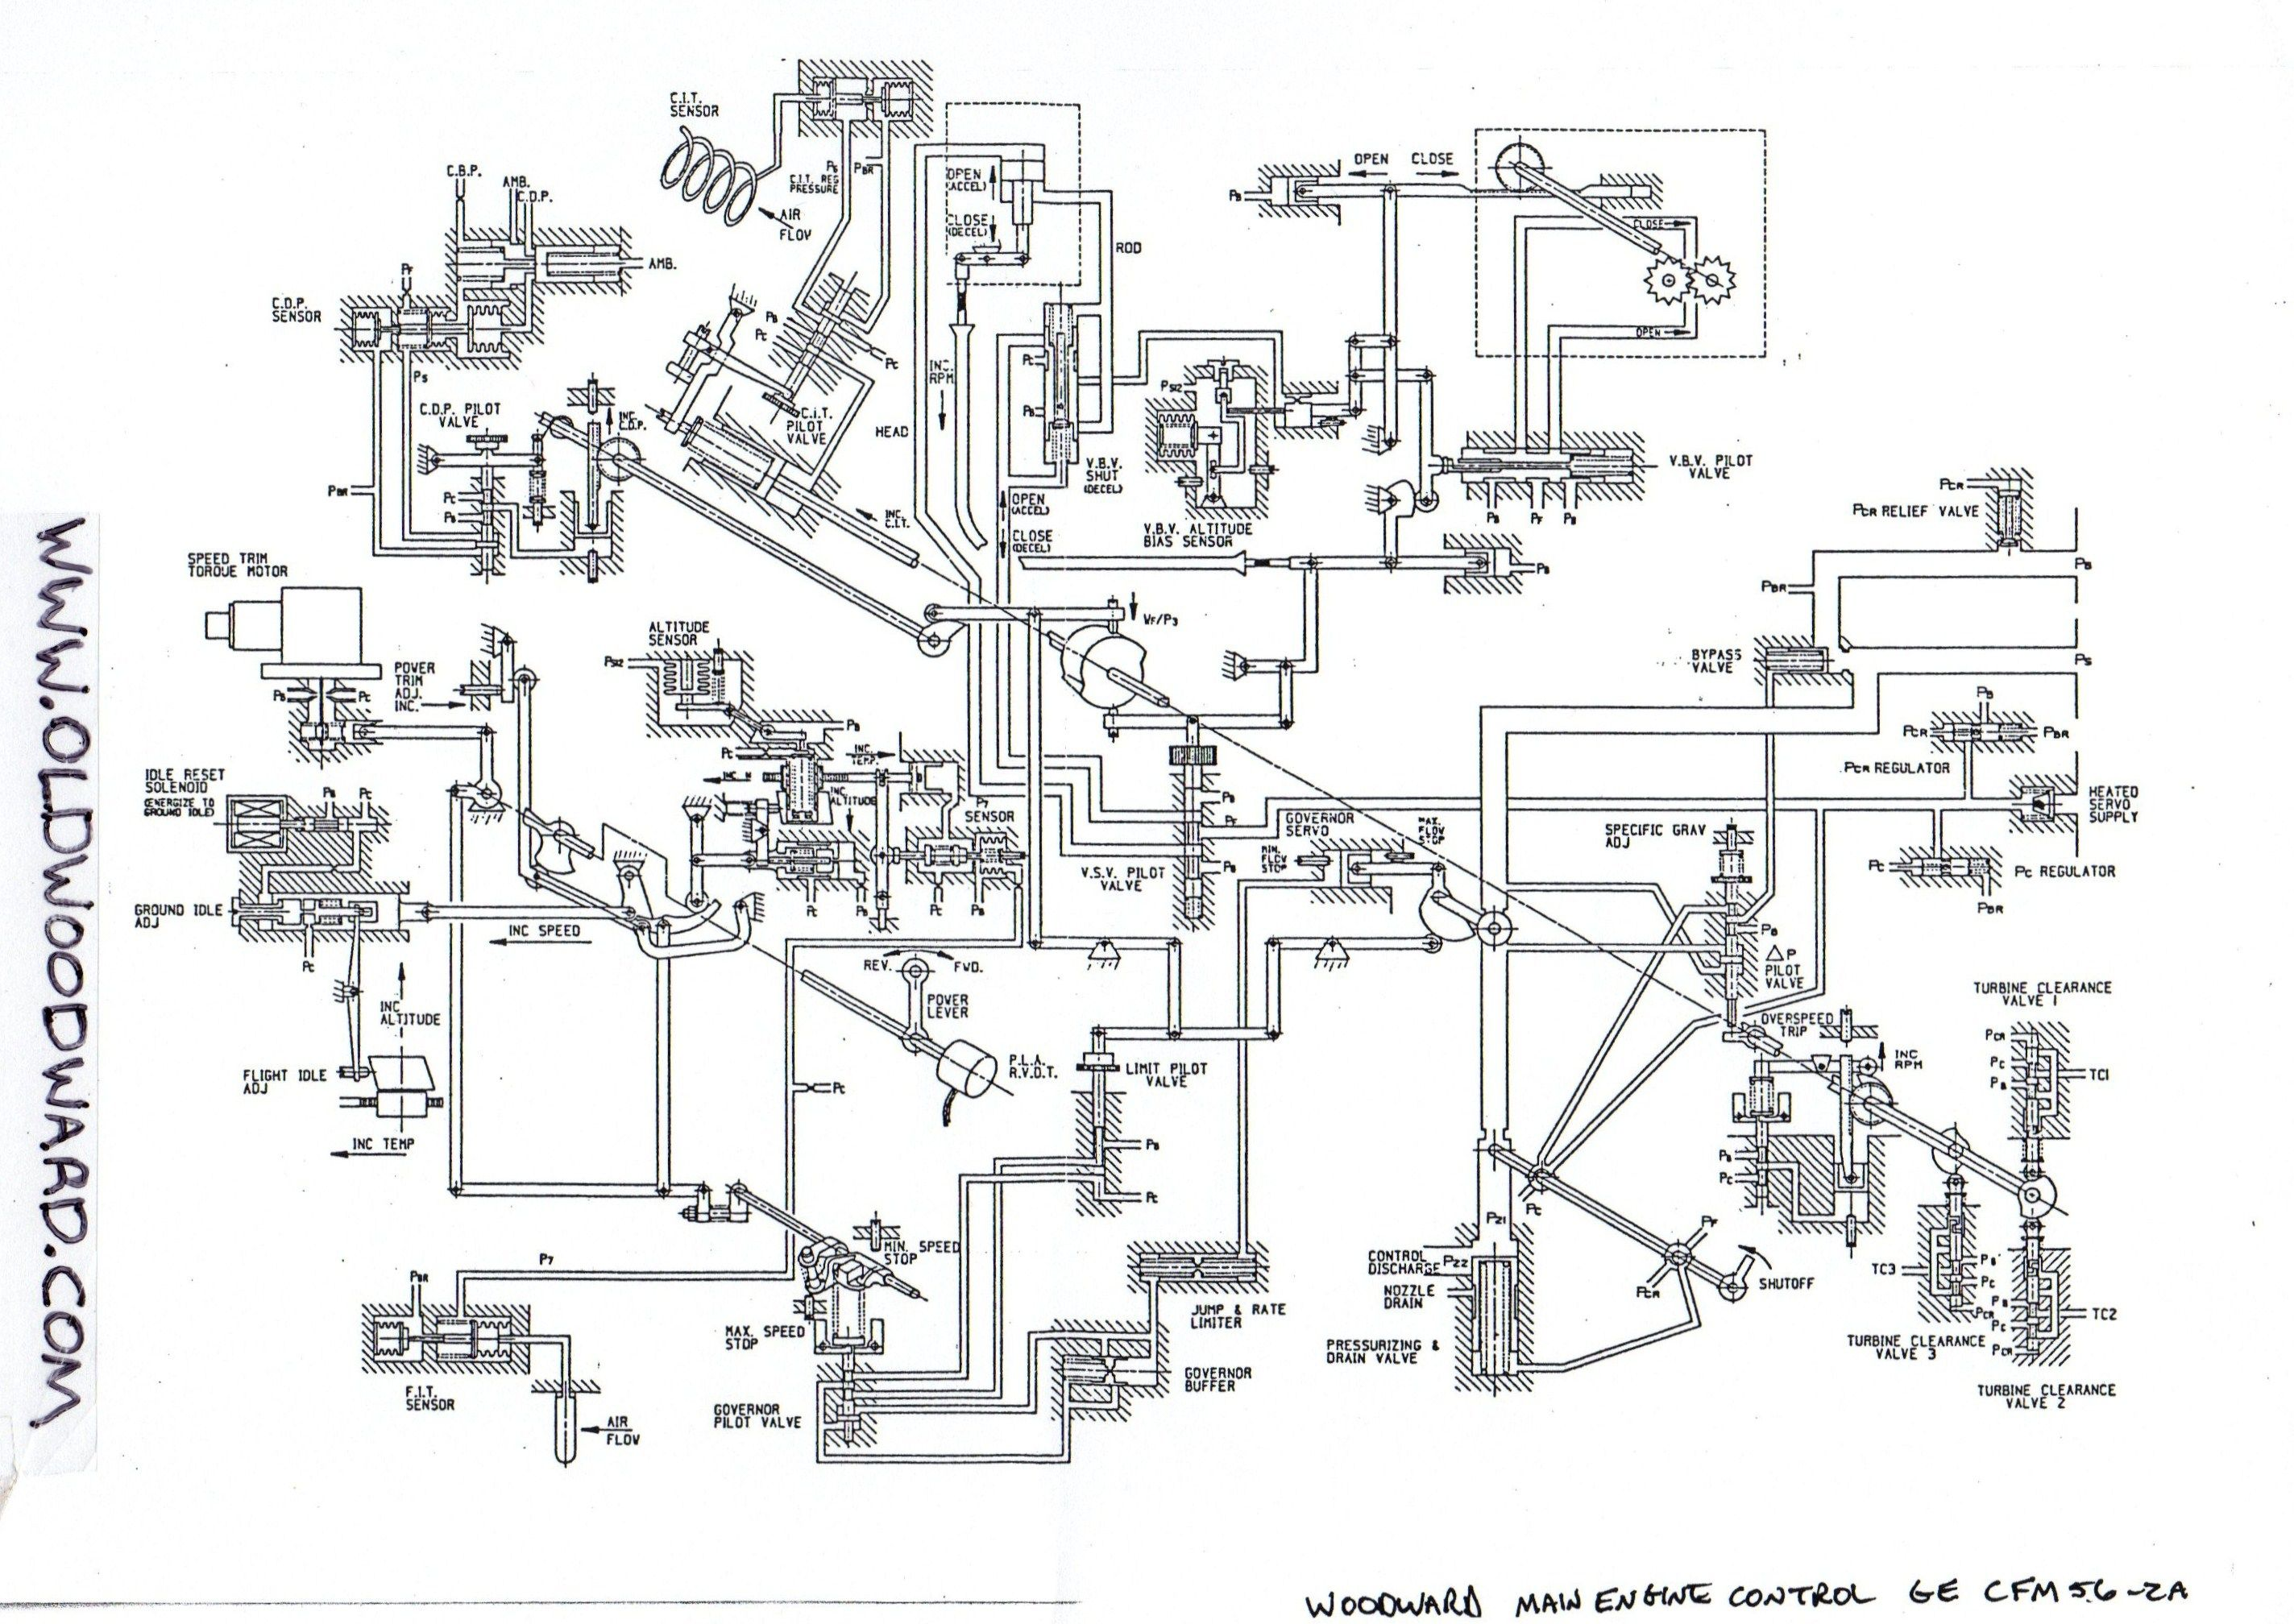 Schematic Drawing For The Woodward Gas Turbine Main Engine Control For The Cfm 56 2a Series Jet Engine Jet Engine Schematic Drawing Turbine Engine